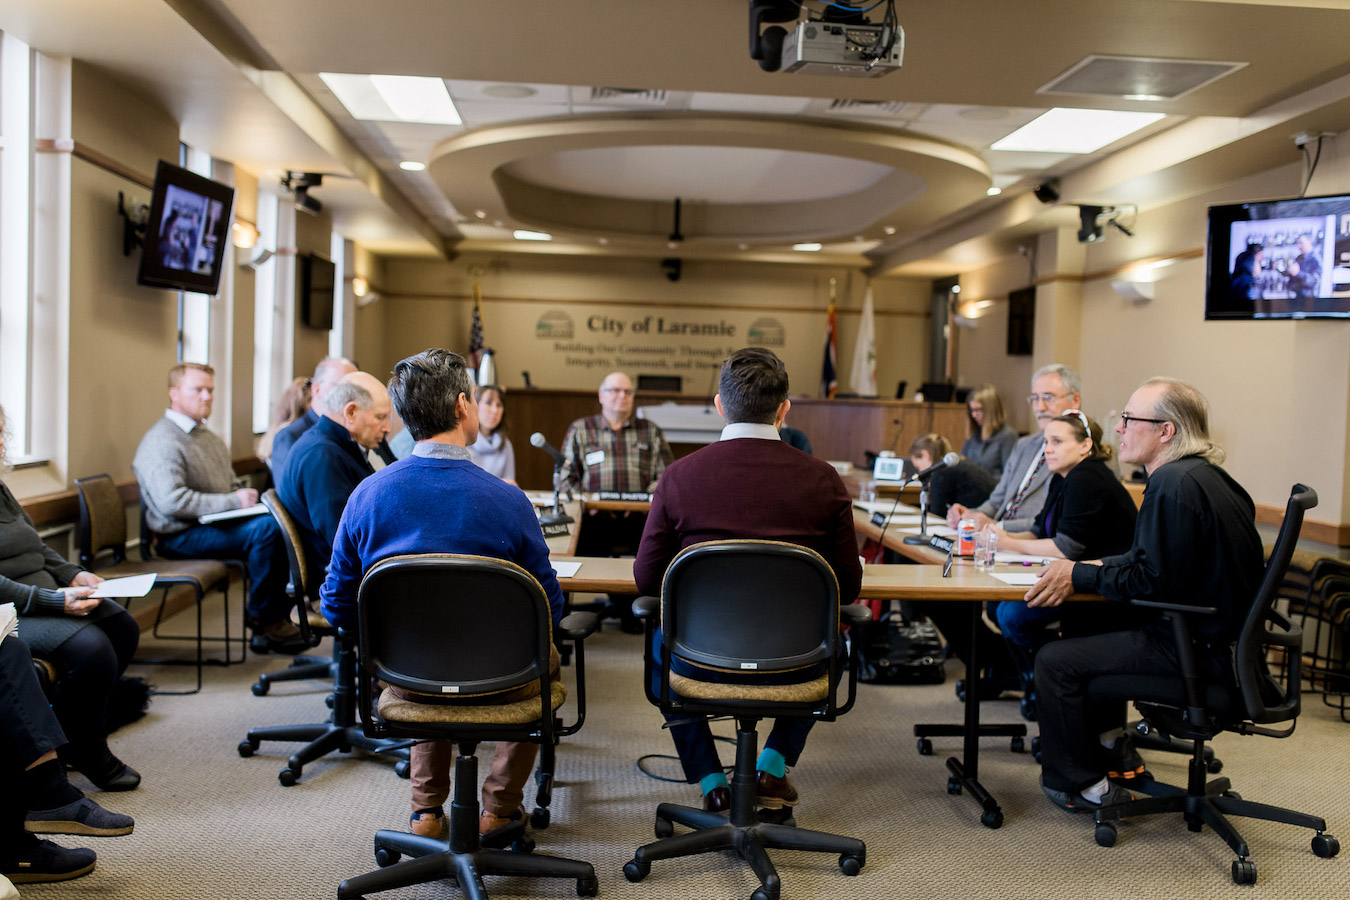 City Council patiently listens as the artists explain this cognitive memory exercise process. Photo credit Megan Lee Photography